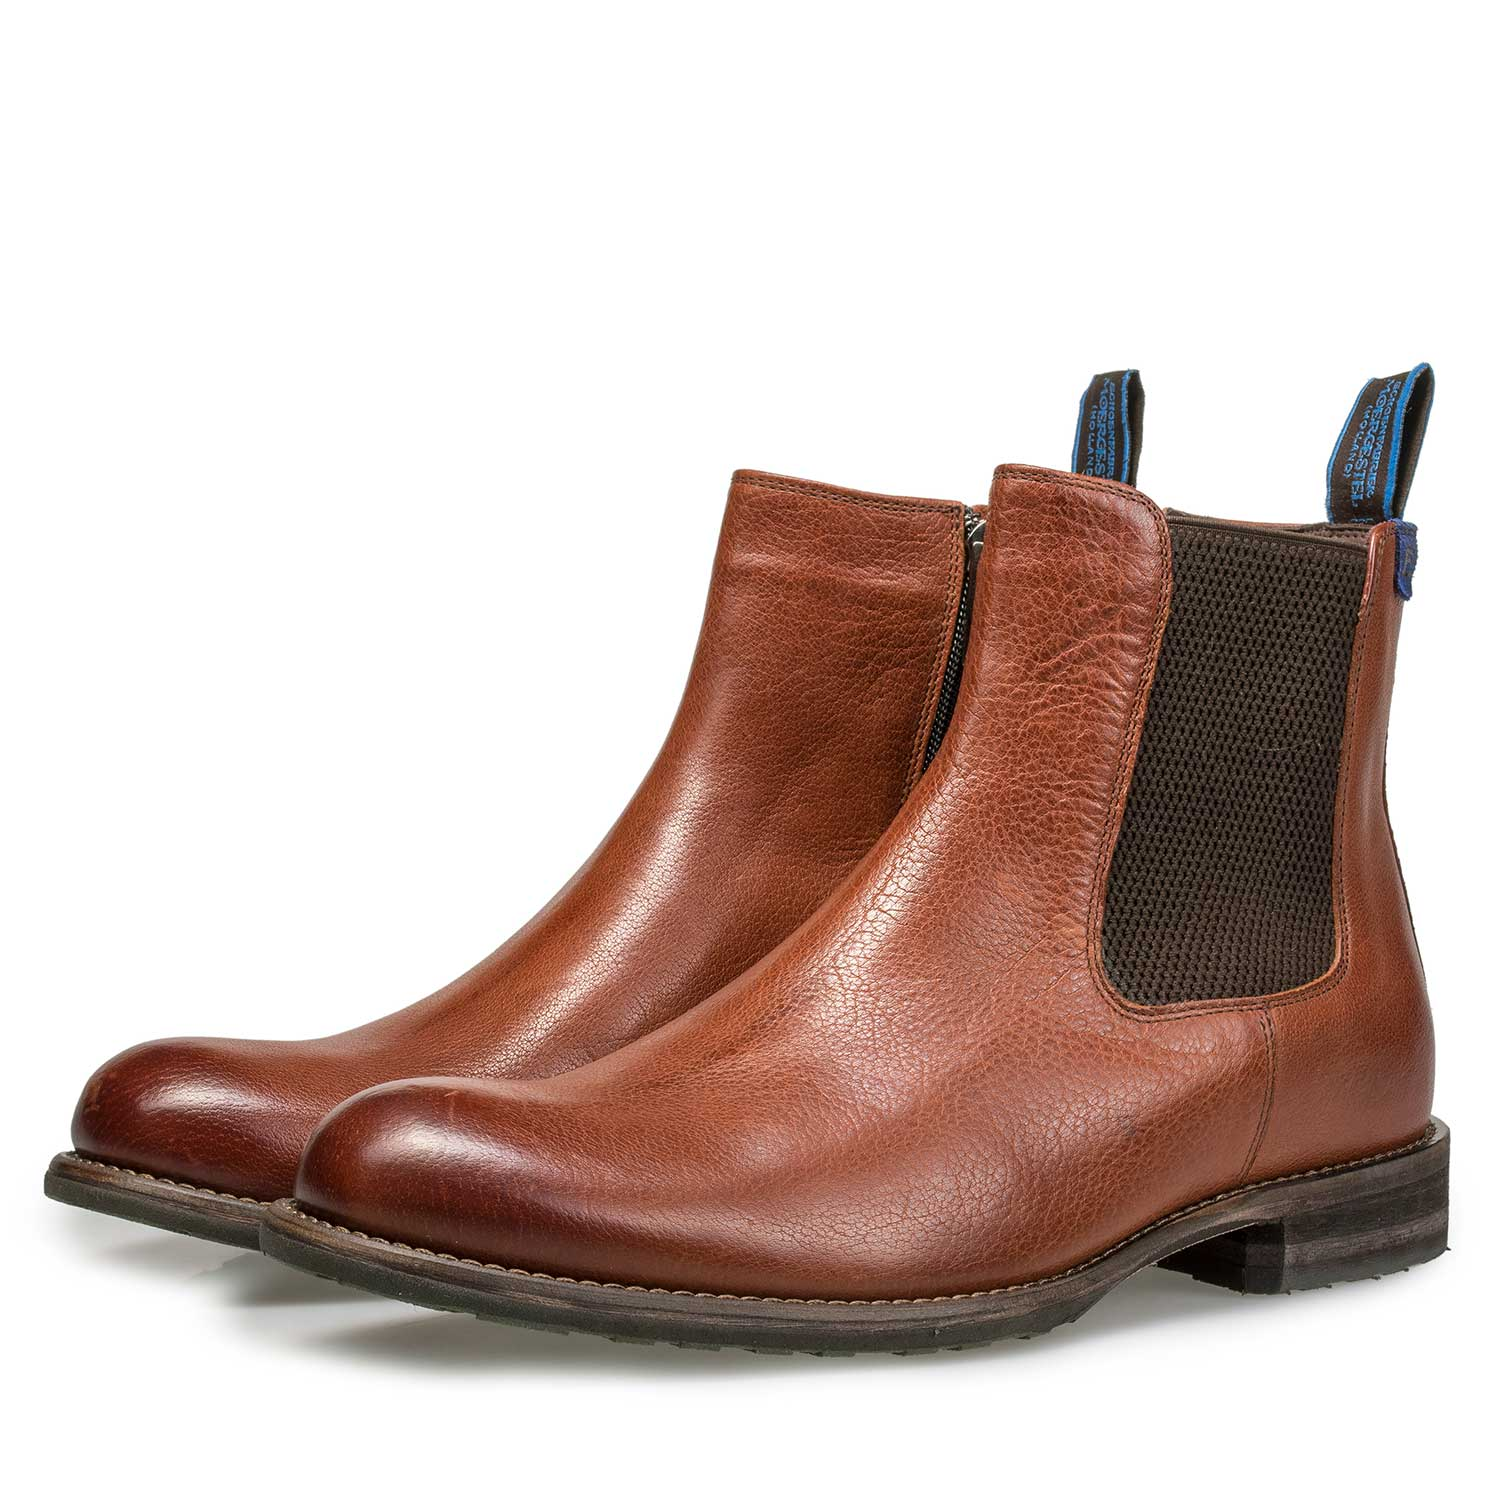 10289/02 - Wool lined cognac-coloured leather Chelsea boot